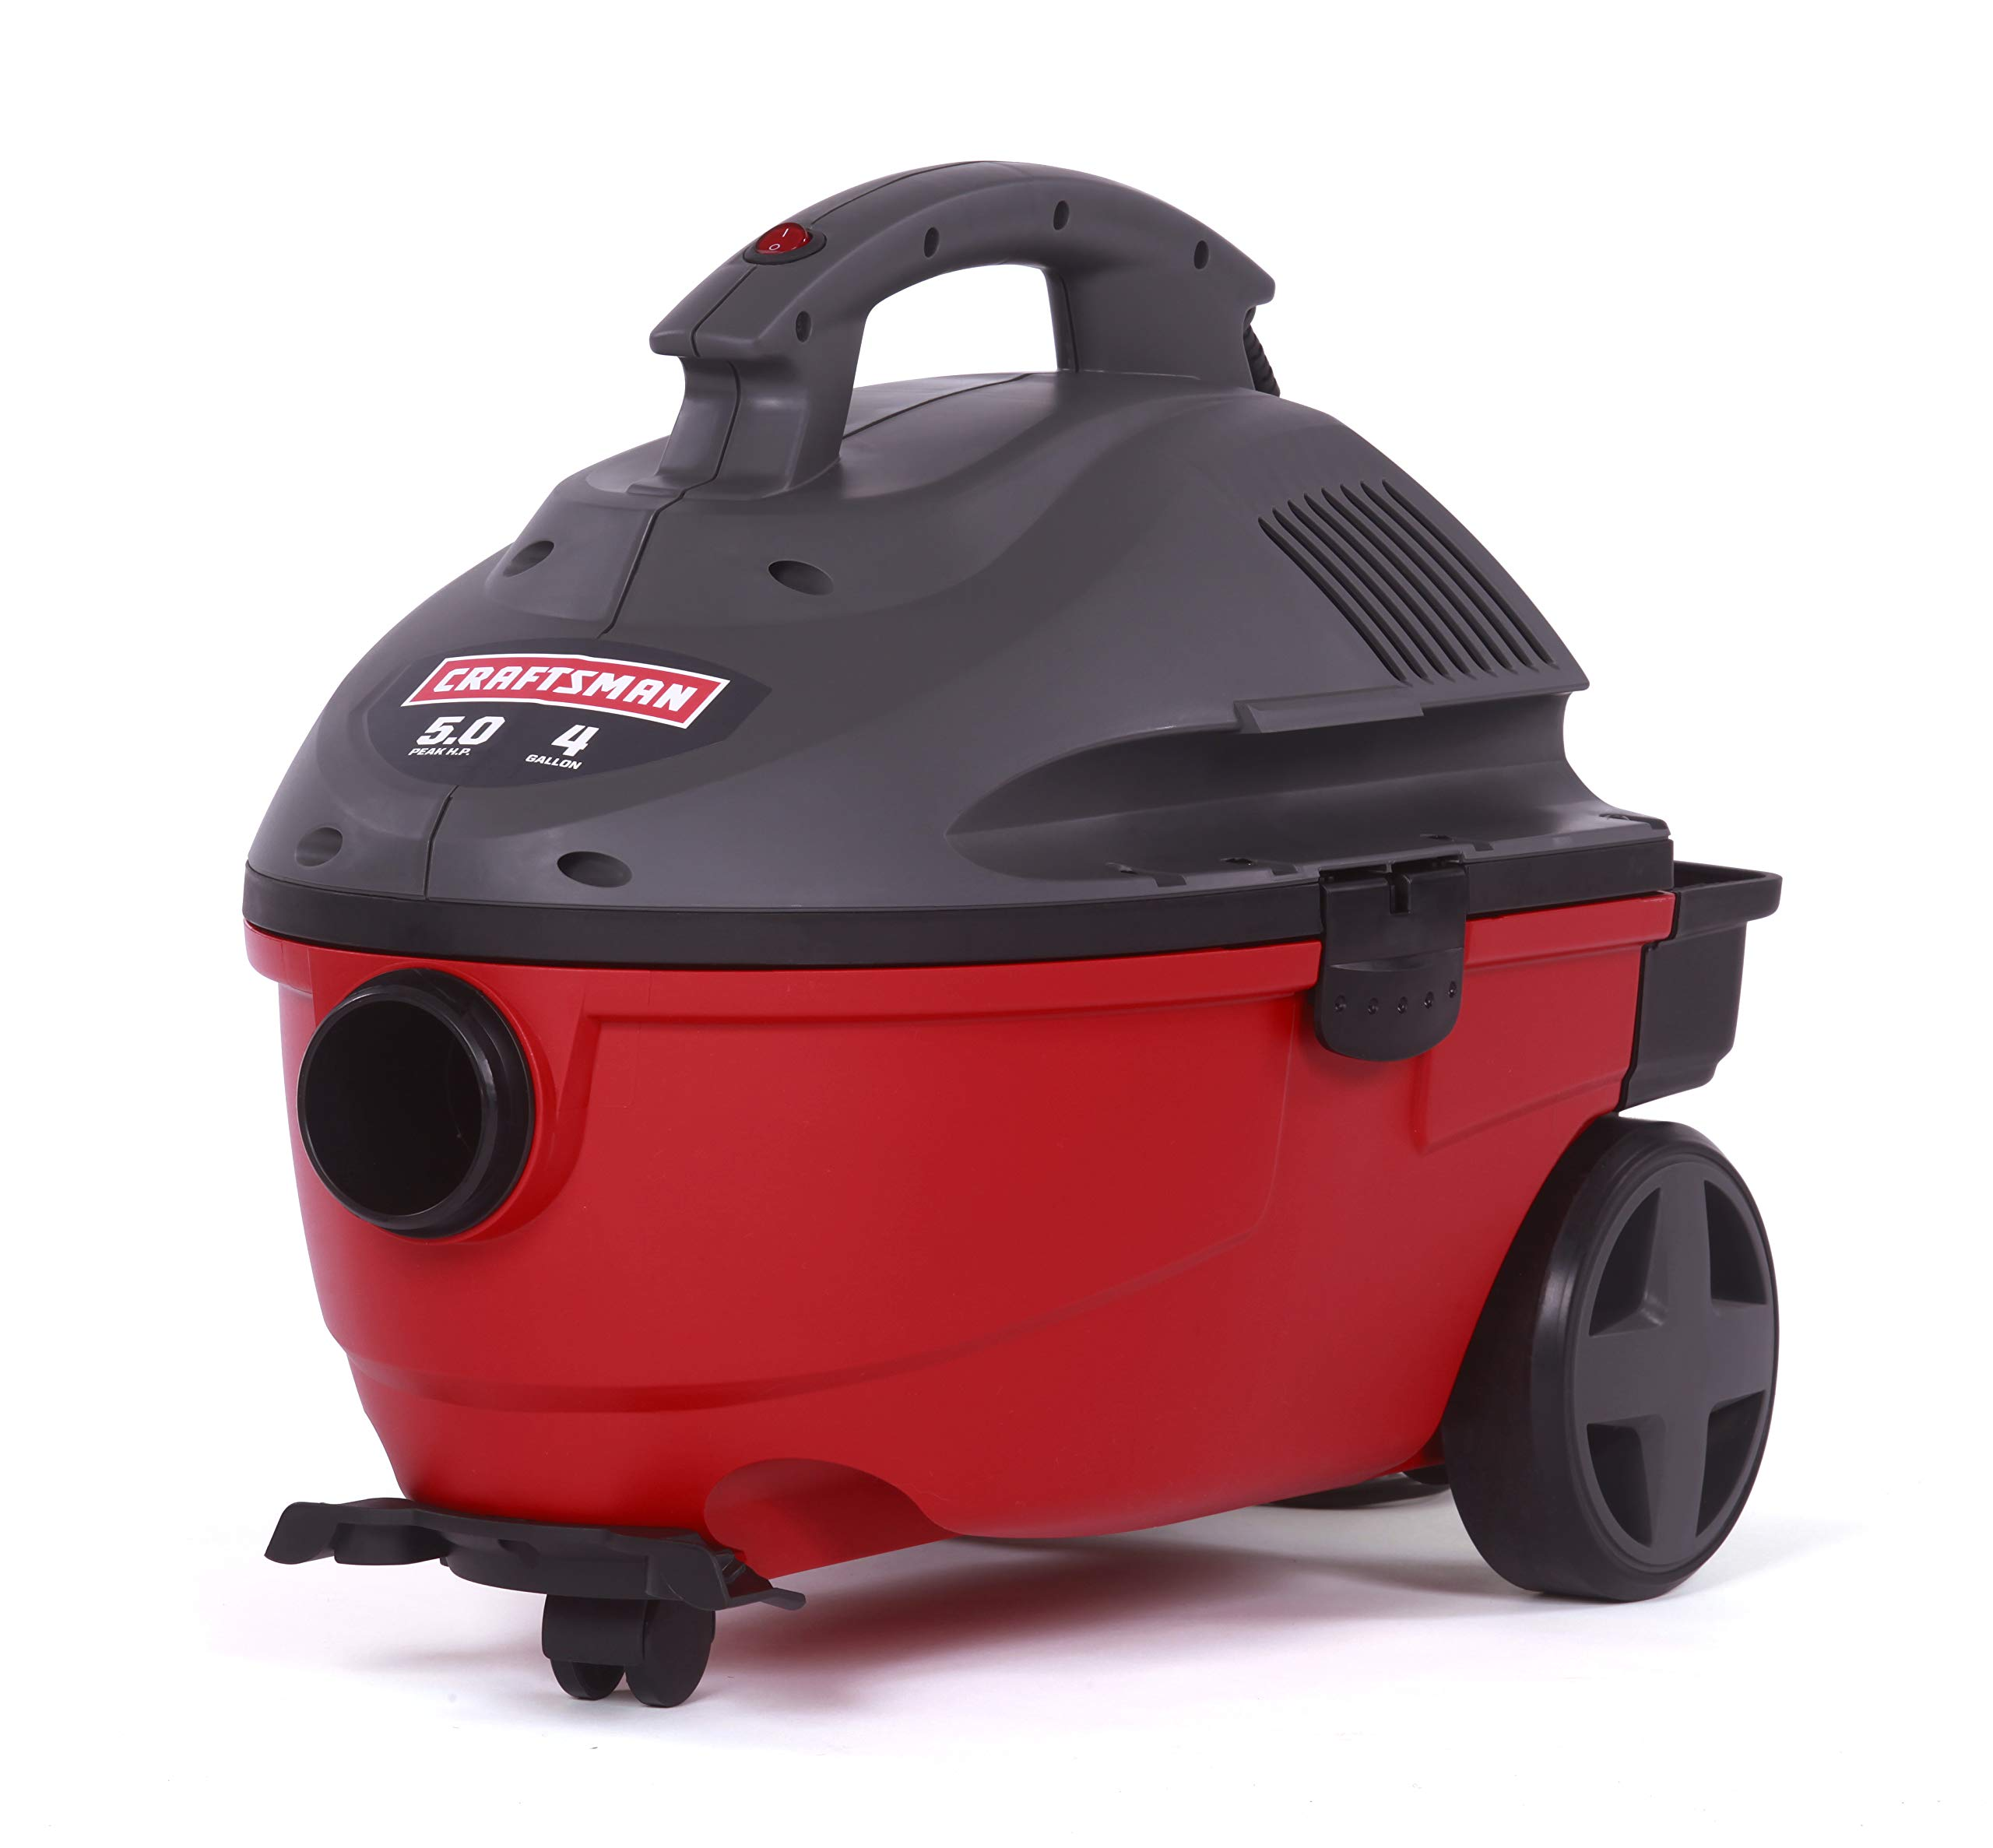 CRAFTSMAN 17612 4 Gallon 5.0 Peak HP Wet/Dry Vac, Portable Shop Vacuum with Attachments by Craftsman